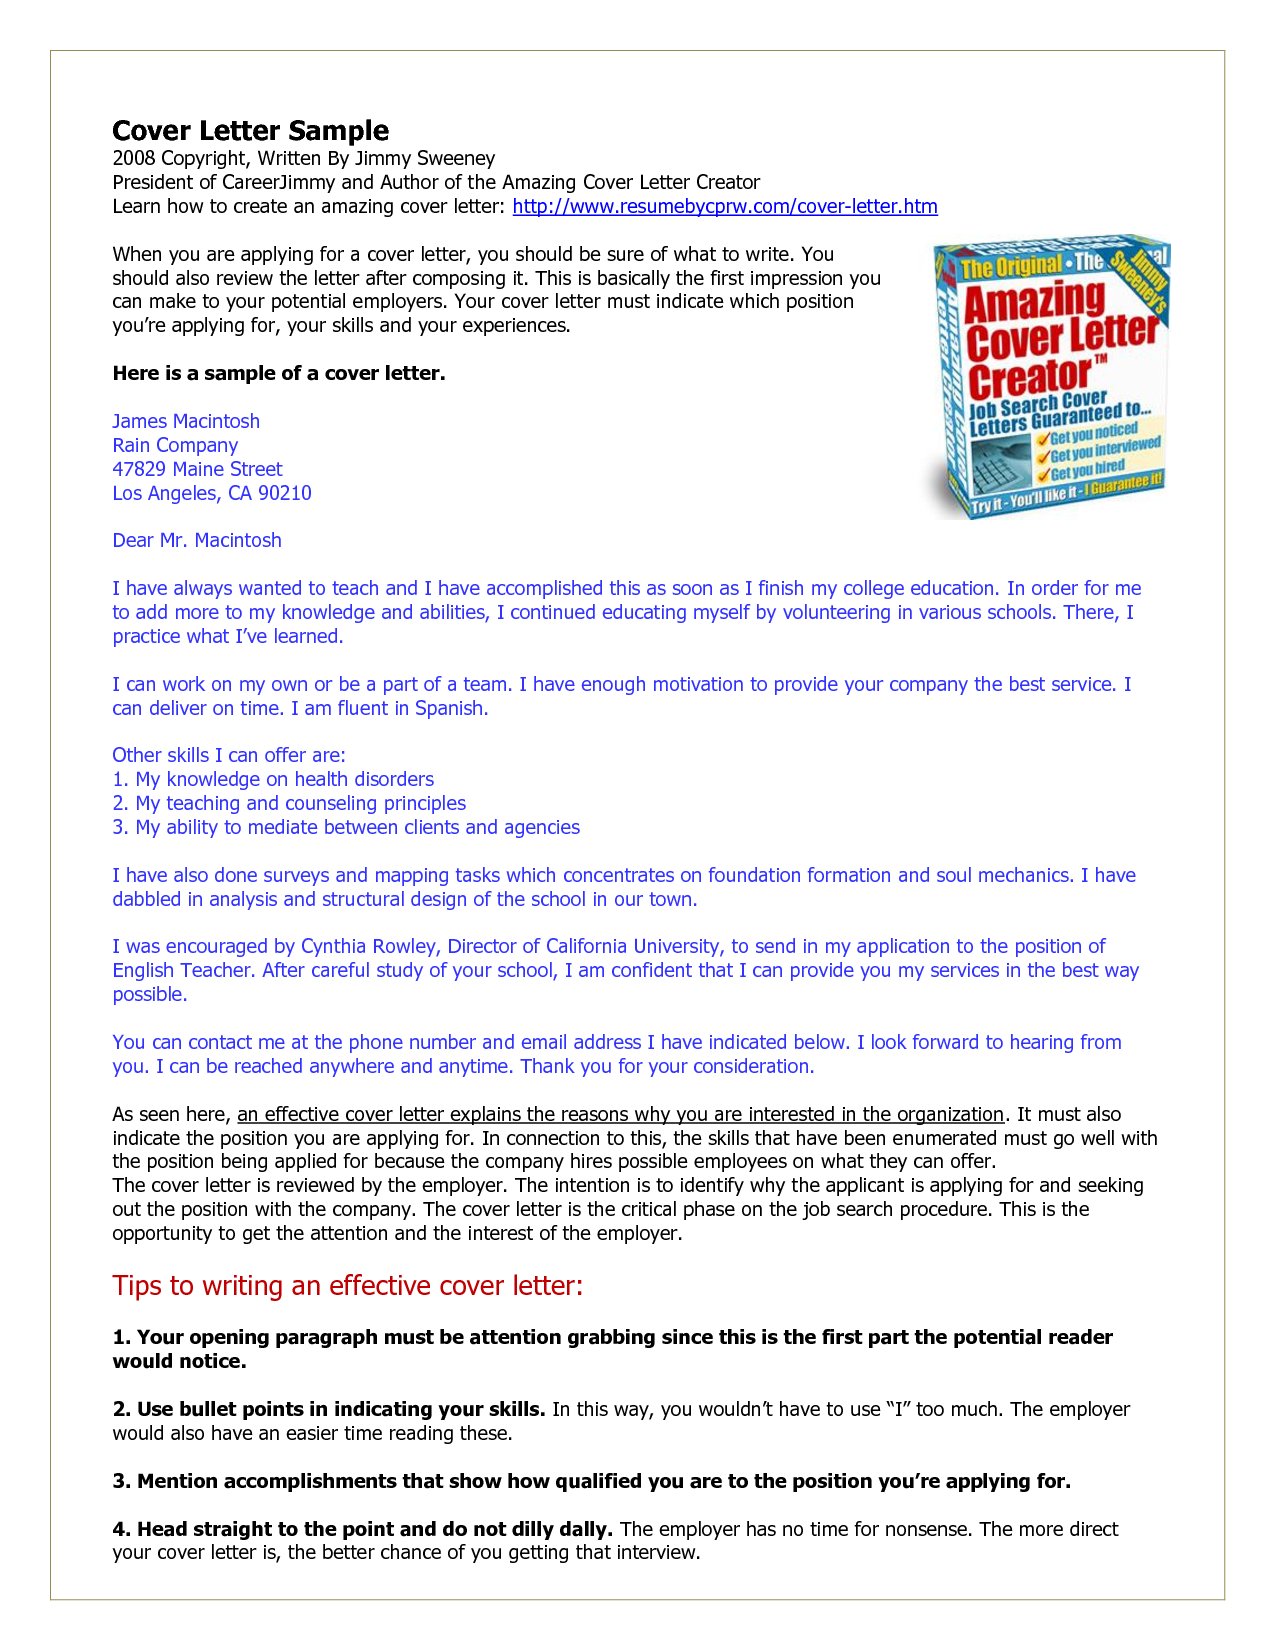 cover-sample. Do You Know How to Get Amazing Cover Letters?